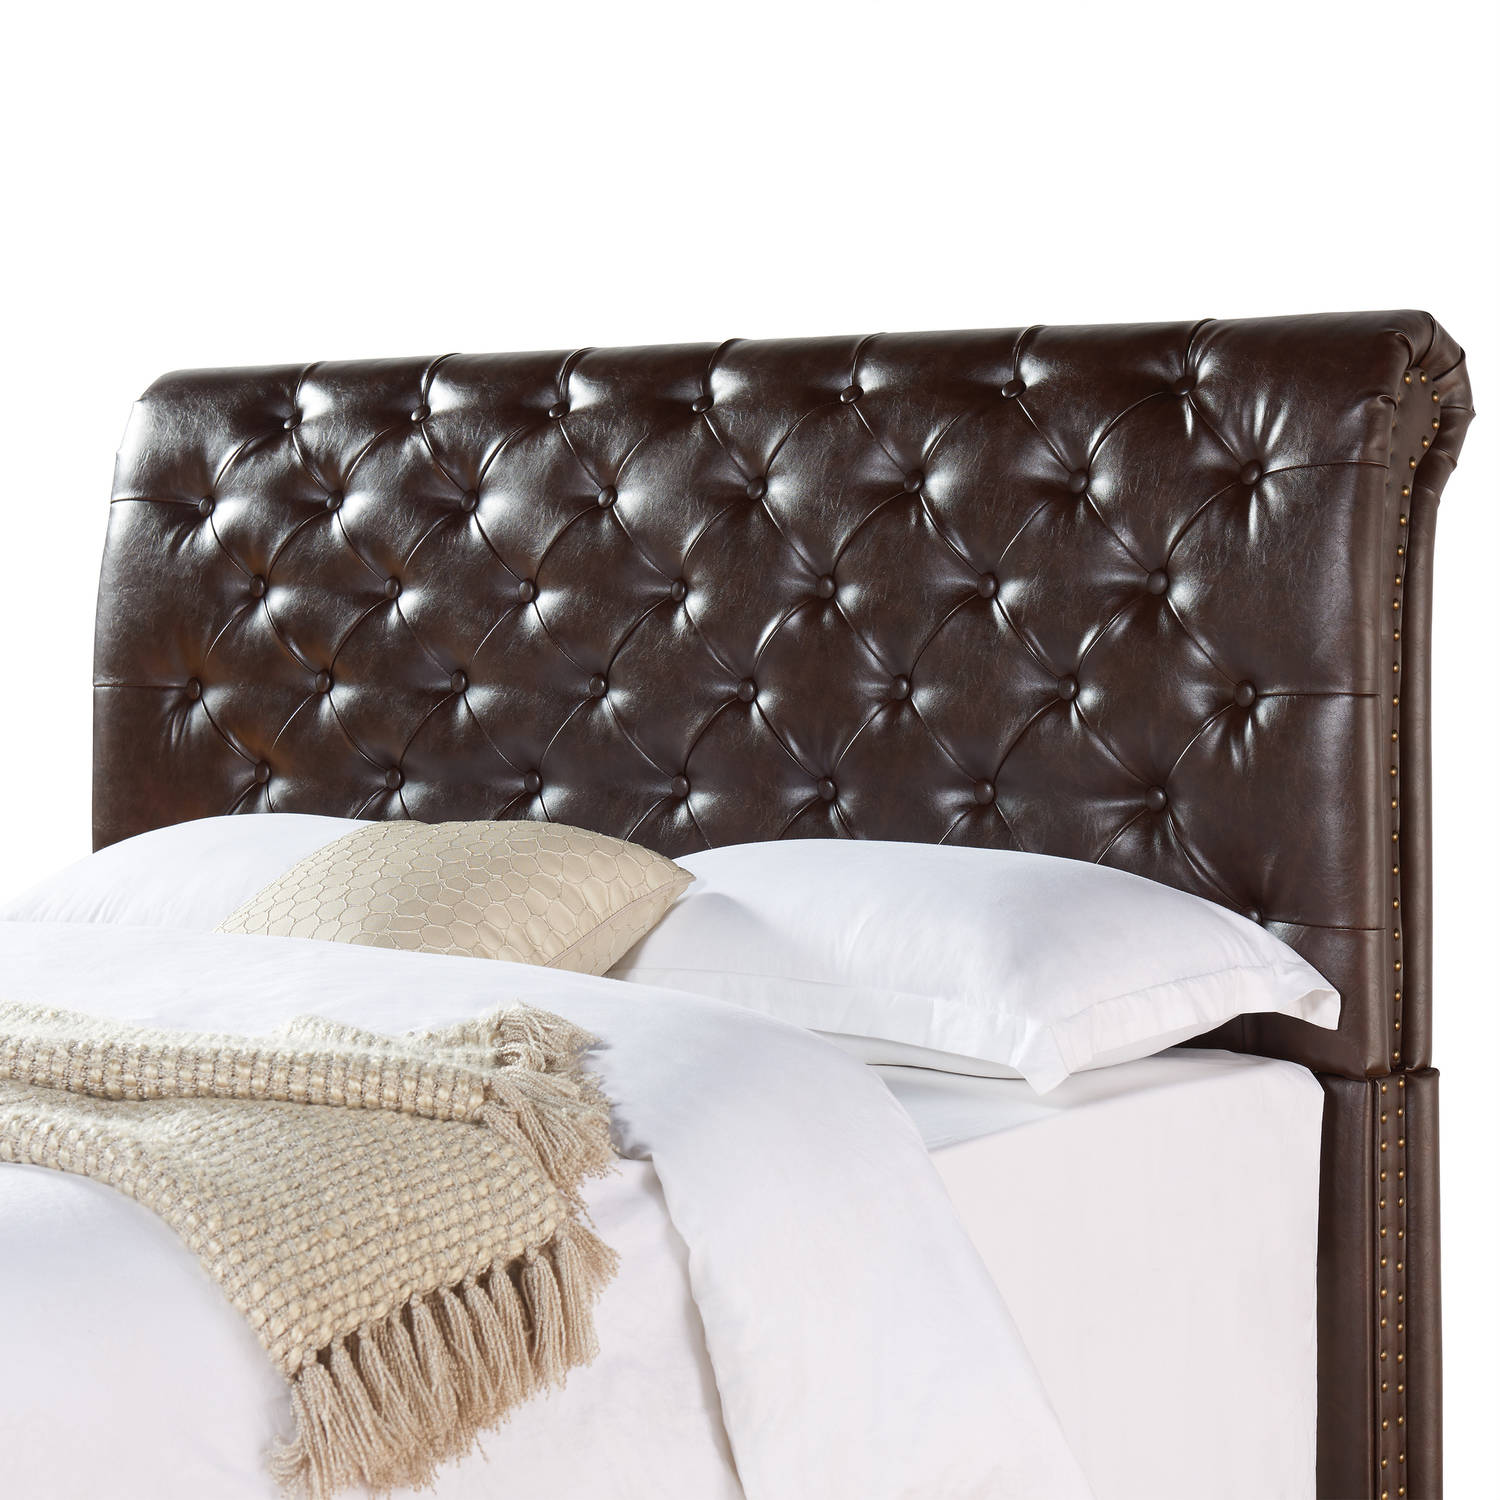 Better Homes & Gardens Rolled Tufted Headboard, Brown Bonded Leather